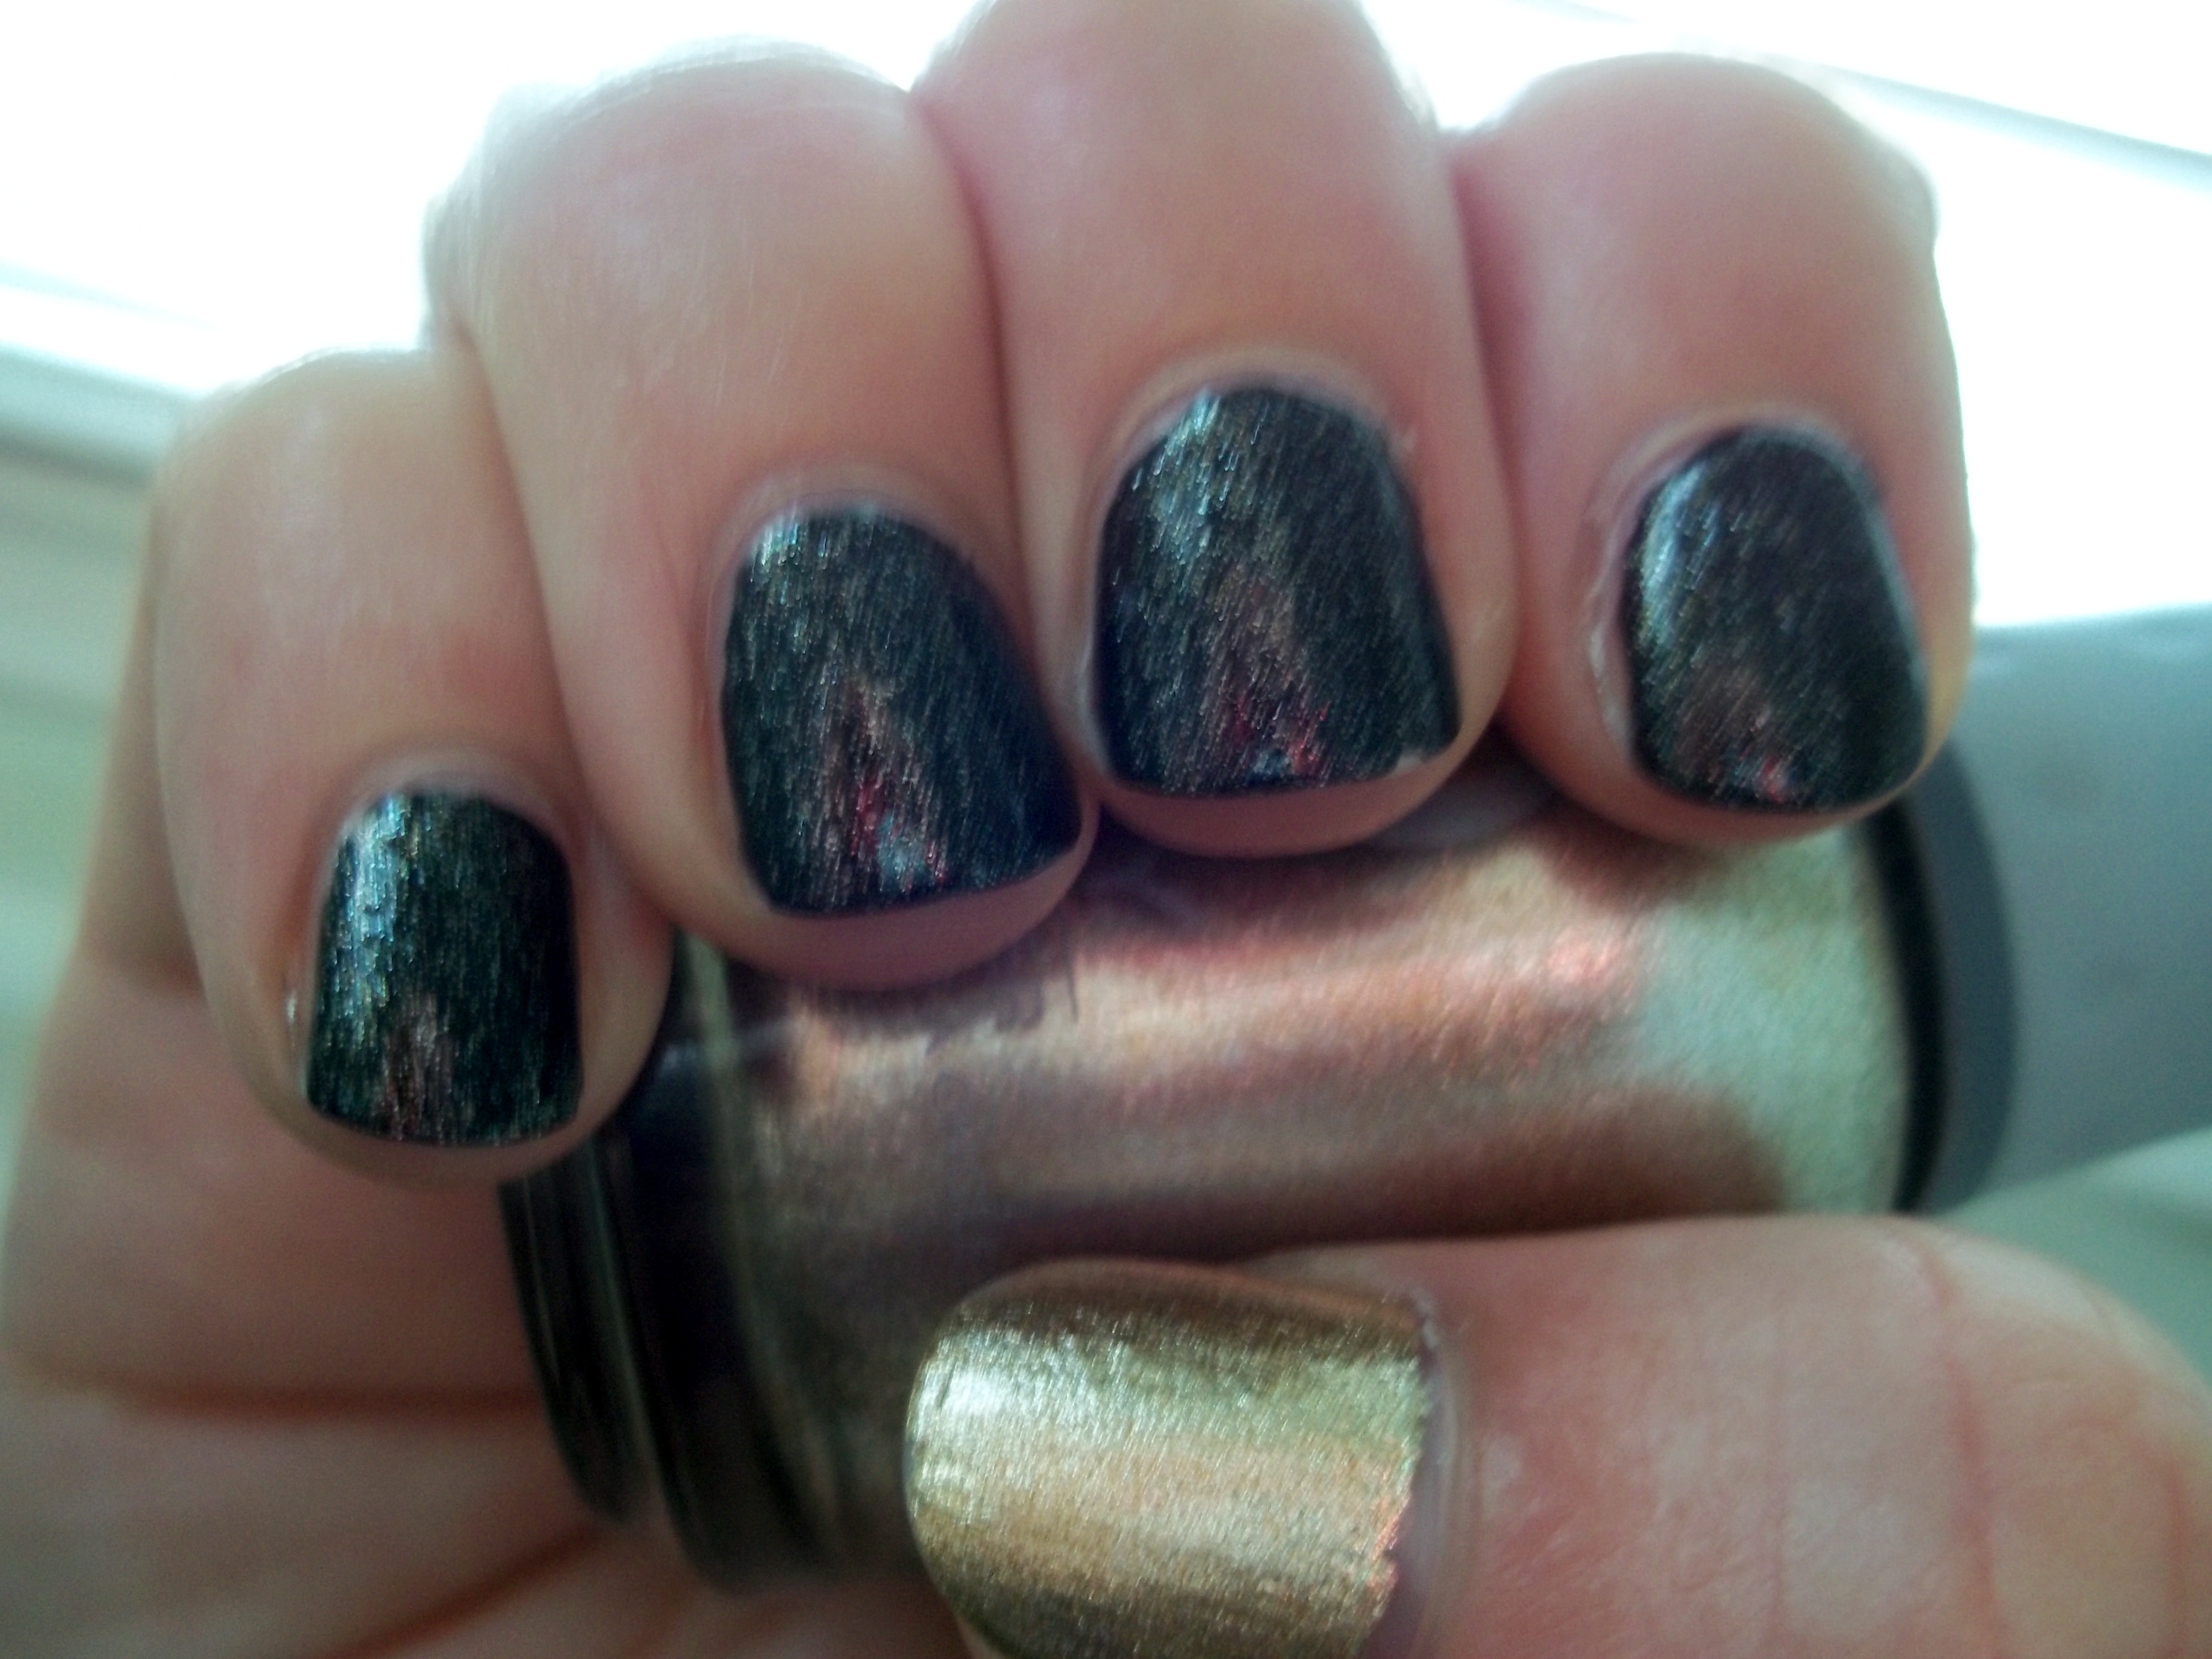 Borghese | DEATH BY POLISH pick your poison